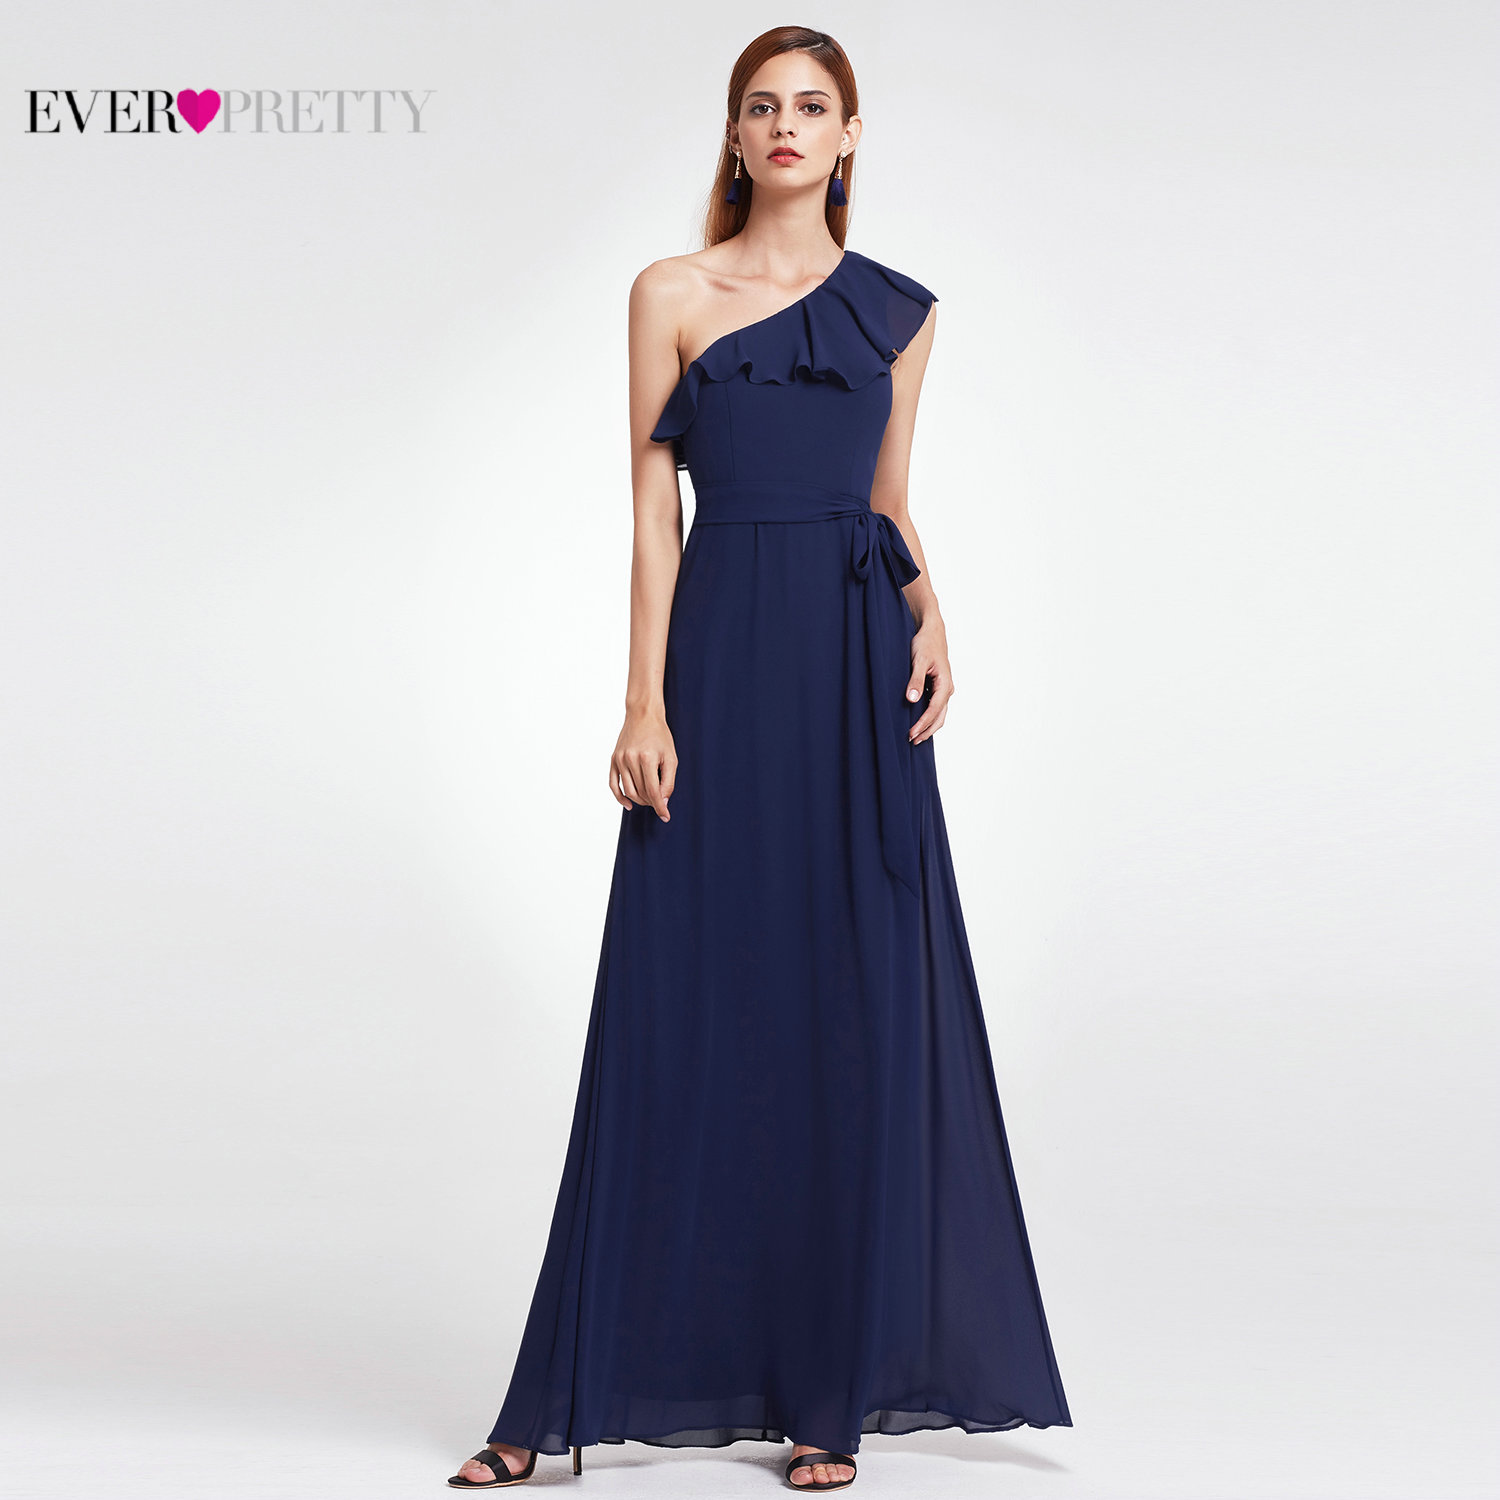 f2659b68005a Evening Dresses Long 2019 Ever Pretty Elegant A-line Chiffon Beach Dresses  Sexy Navy Blue